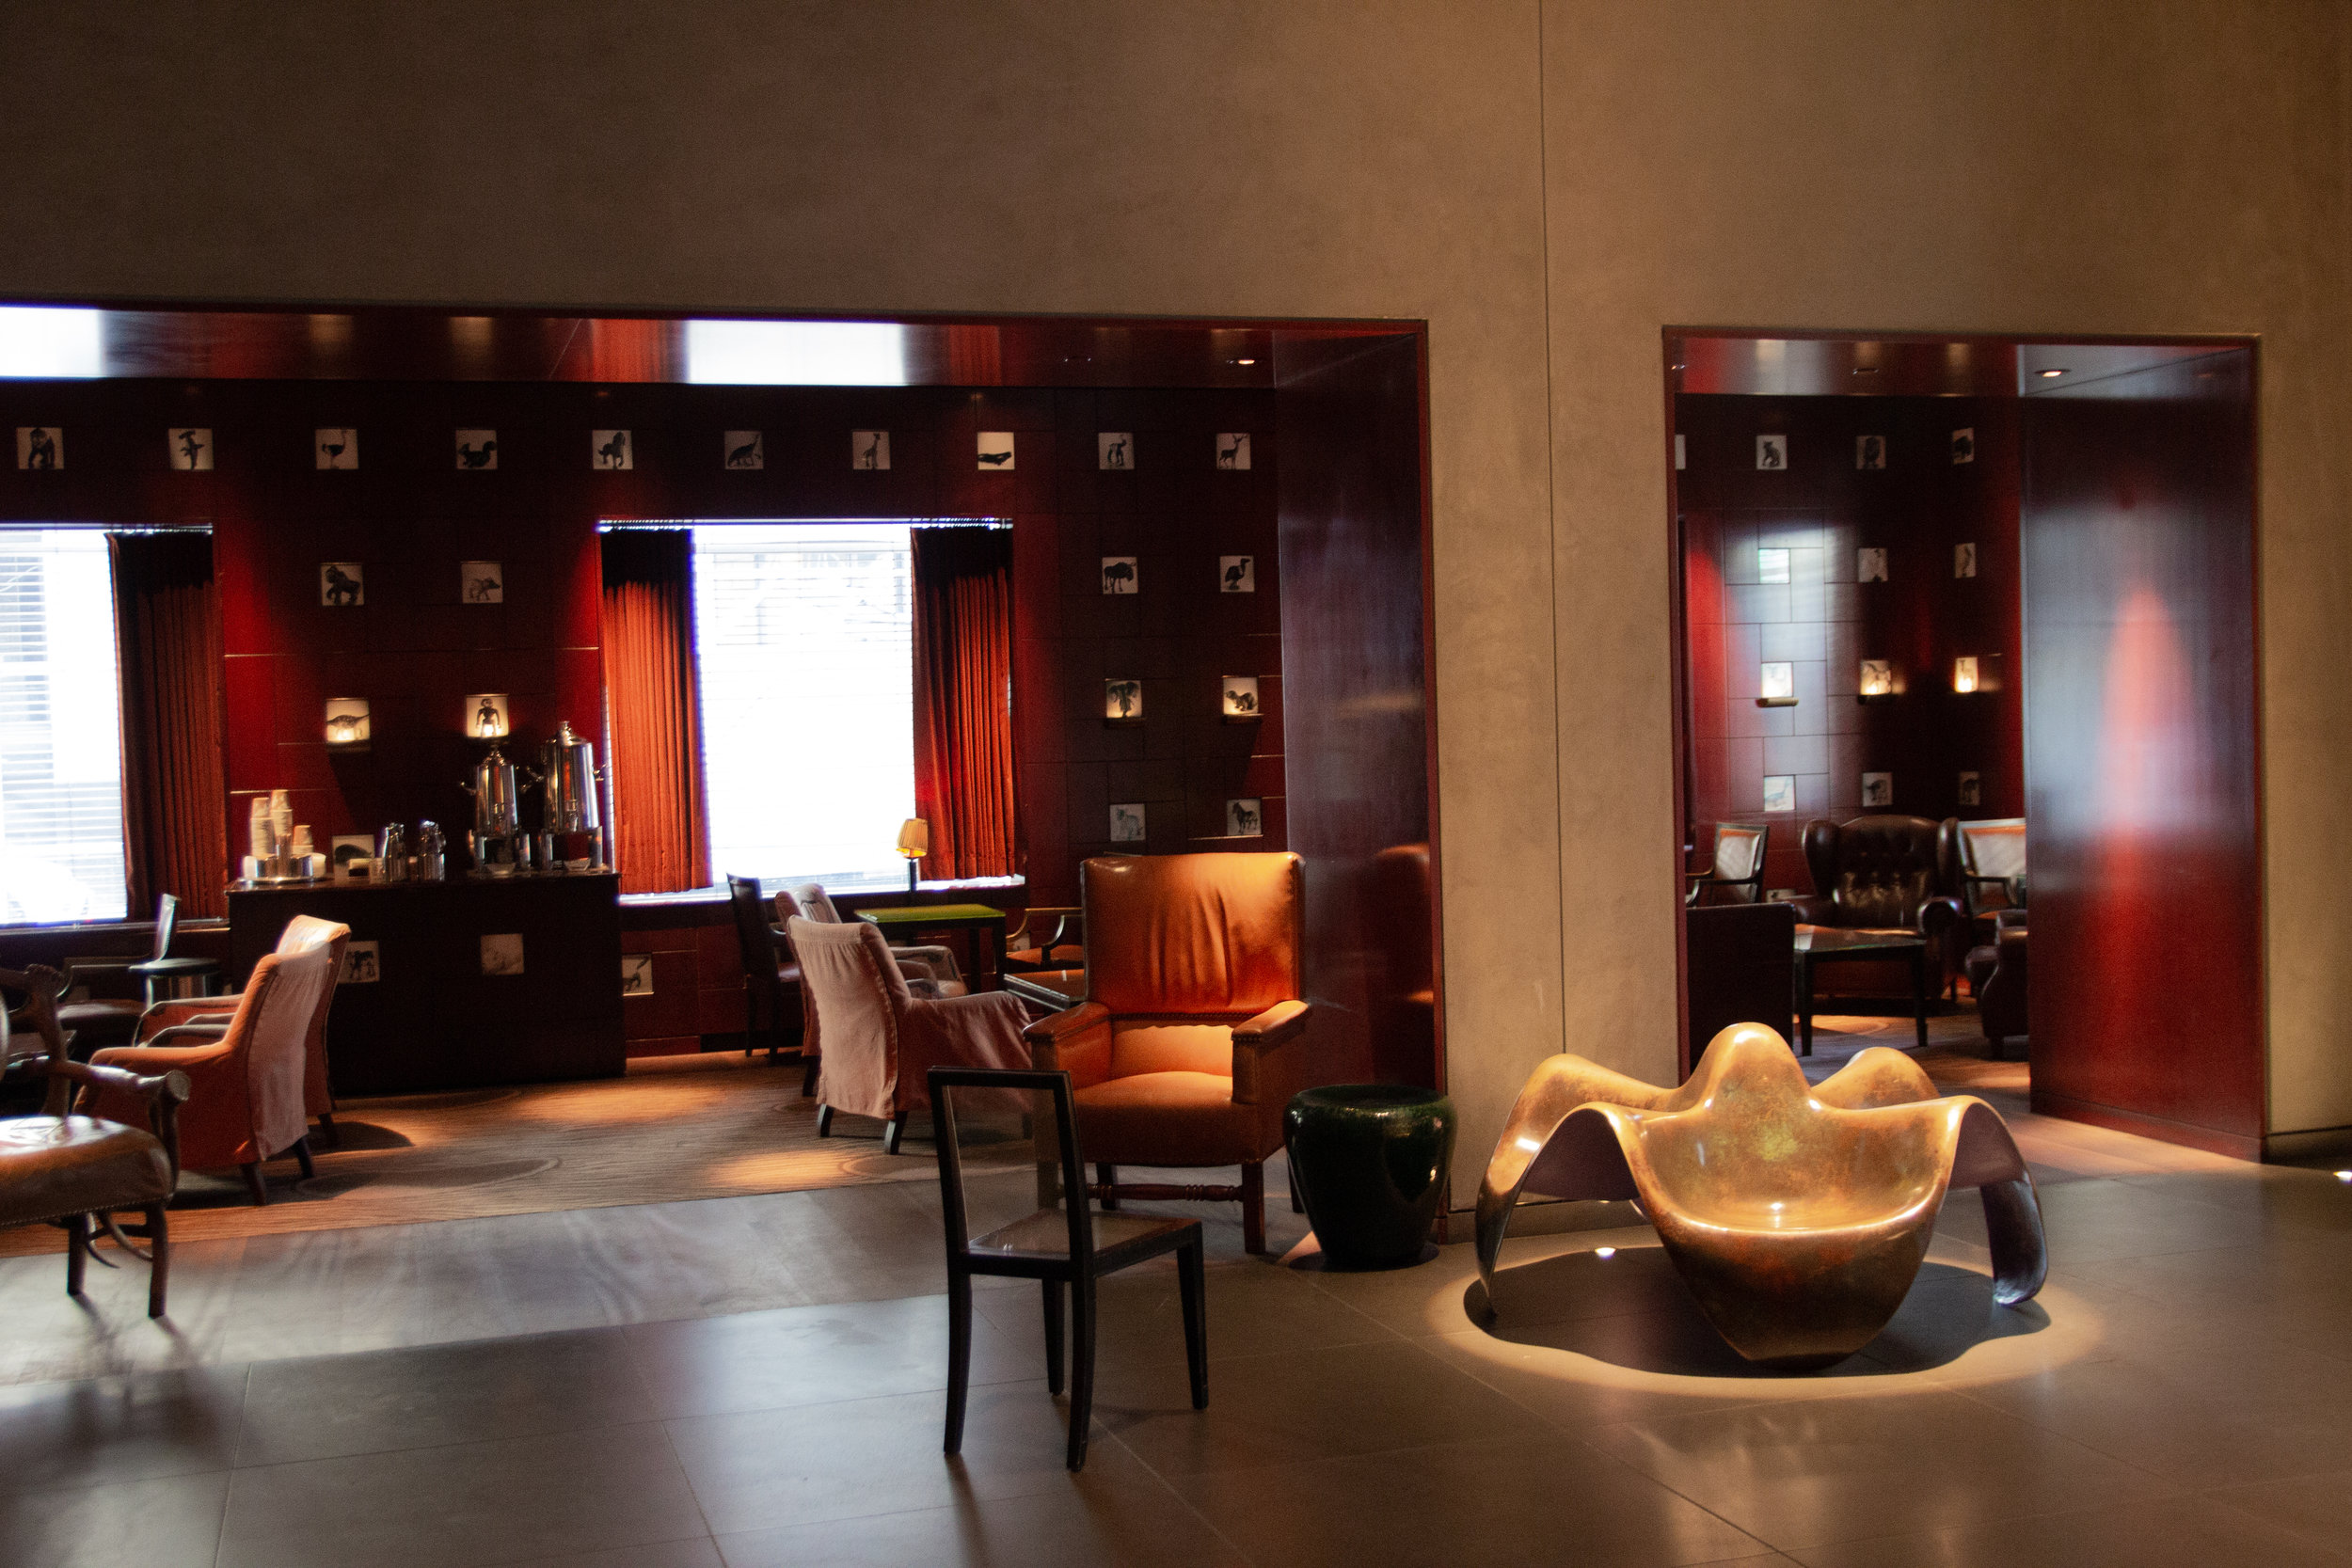 where to stay in san francisco, the clift royal sonesta, cool hotels in sanfrancisco, #chairsoftheclift, visit california, california road trip, philipe starke